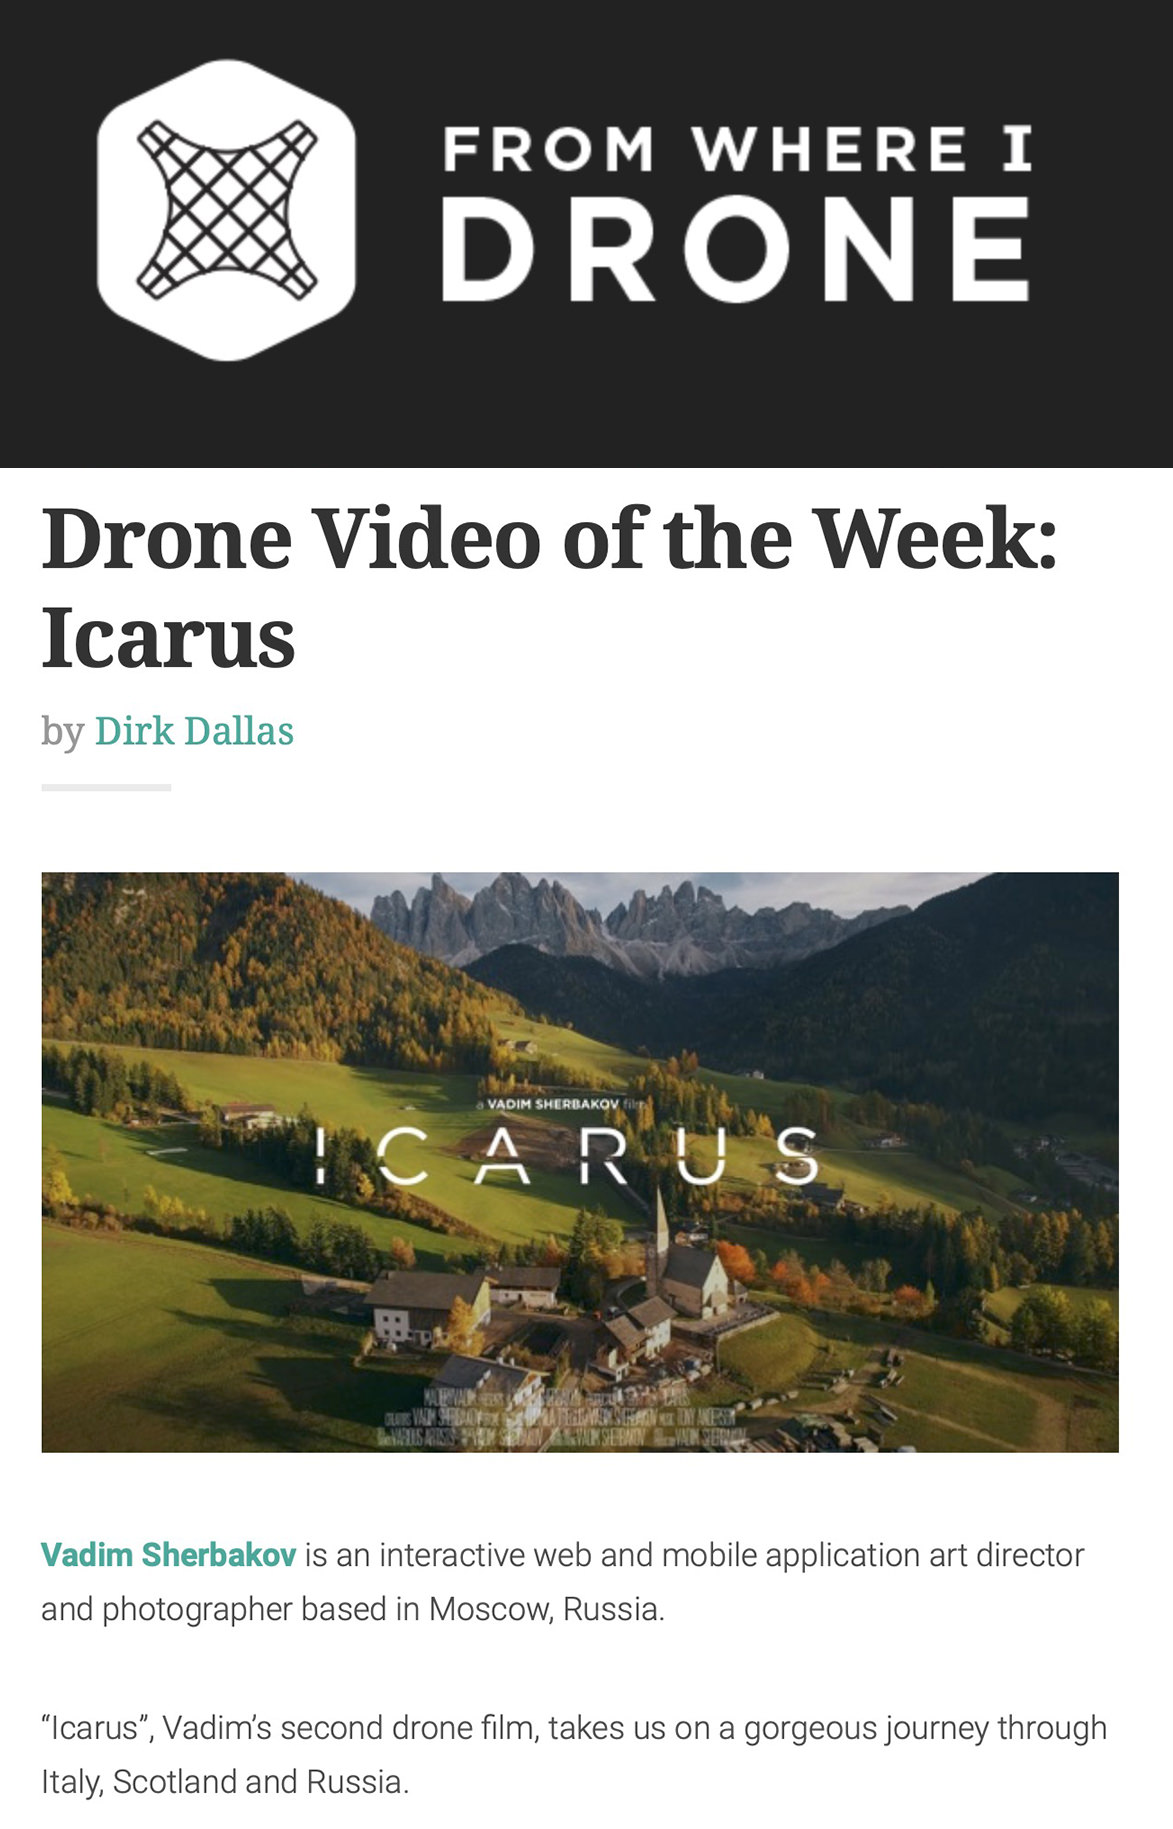 From Where I Drone Video of the Week Article